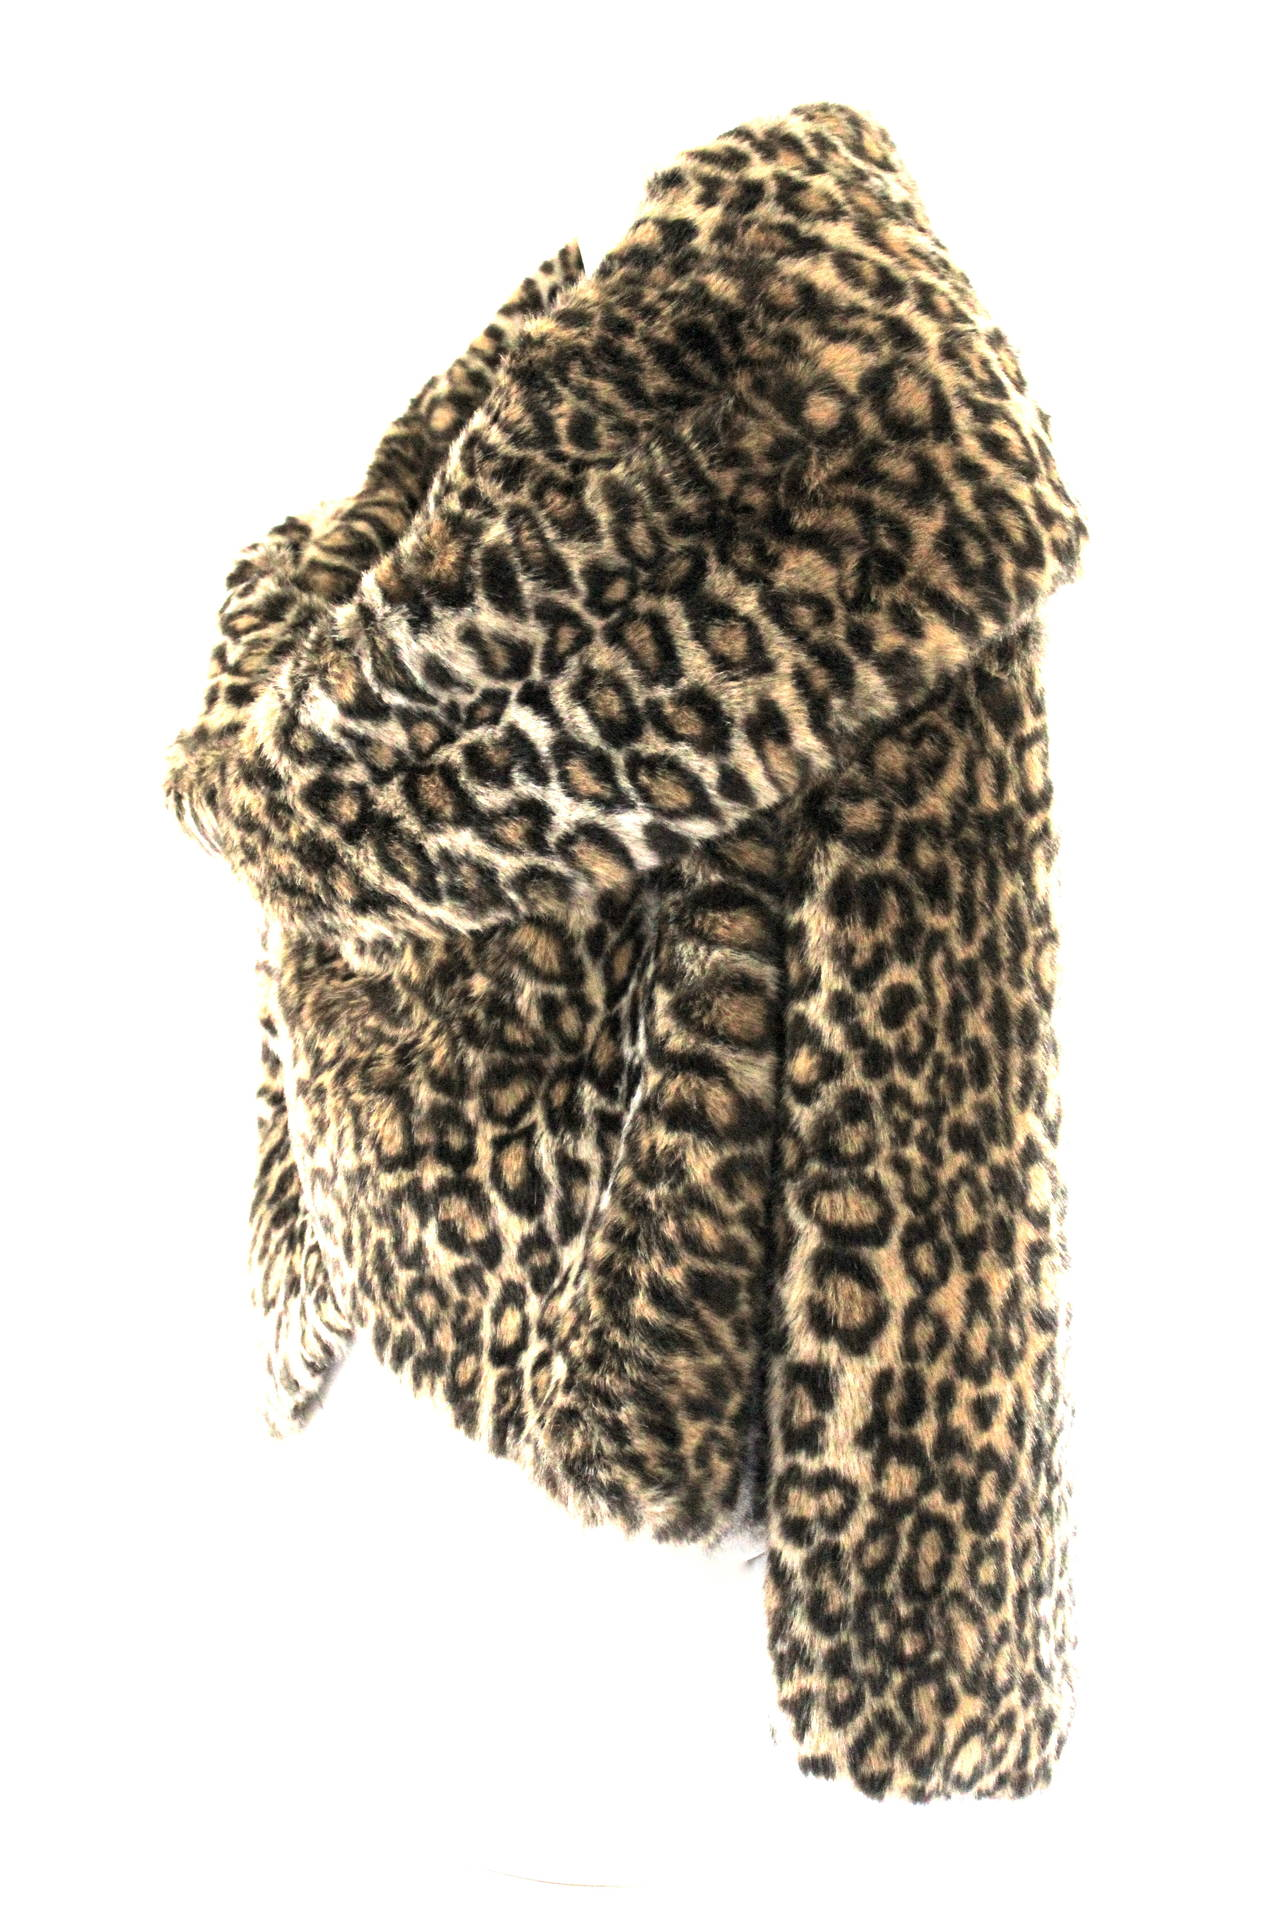 Junya Watanabe for CDG AD 2000 Faux Fur Leopard Cape For Sale 1